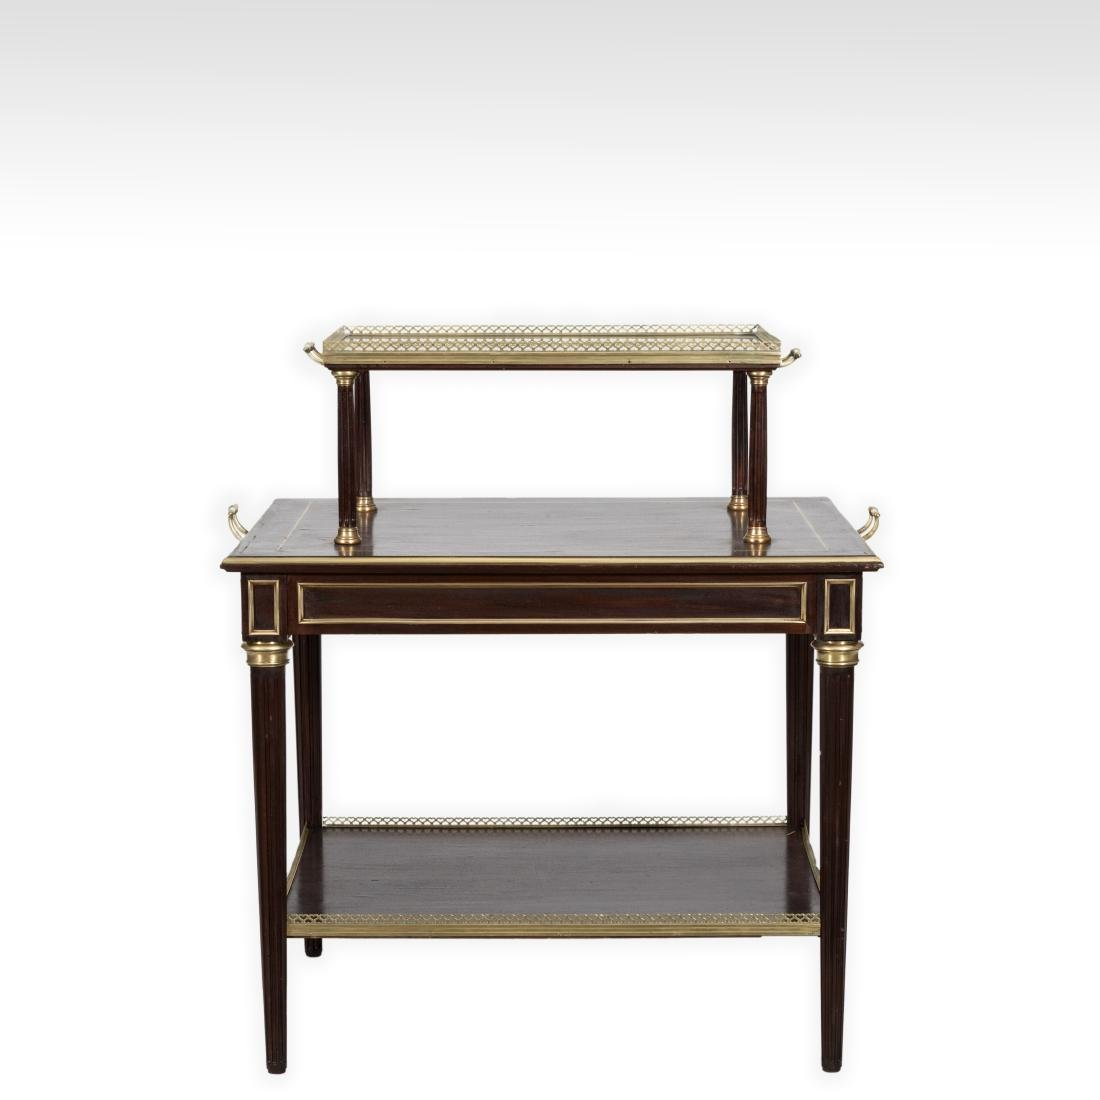 Two Tier French Server with Brass Trim